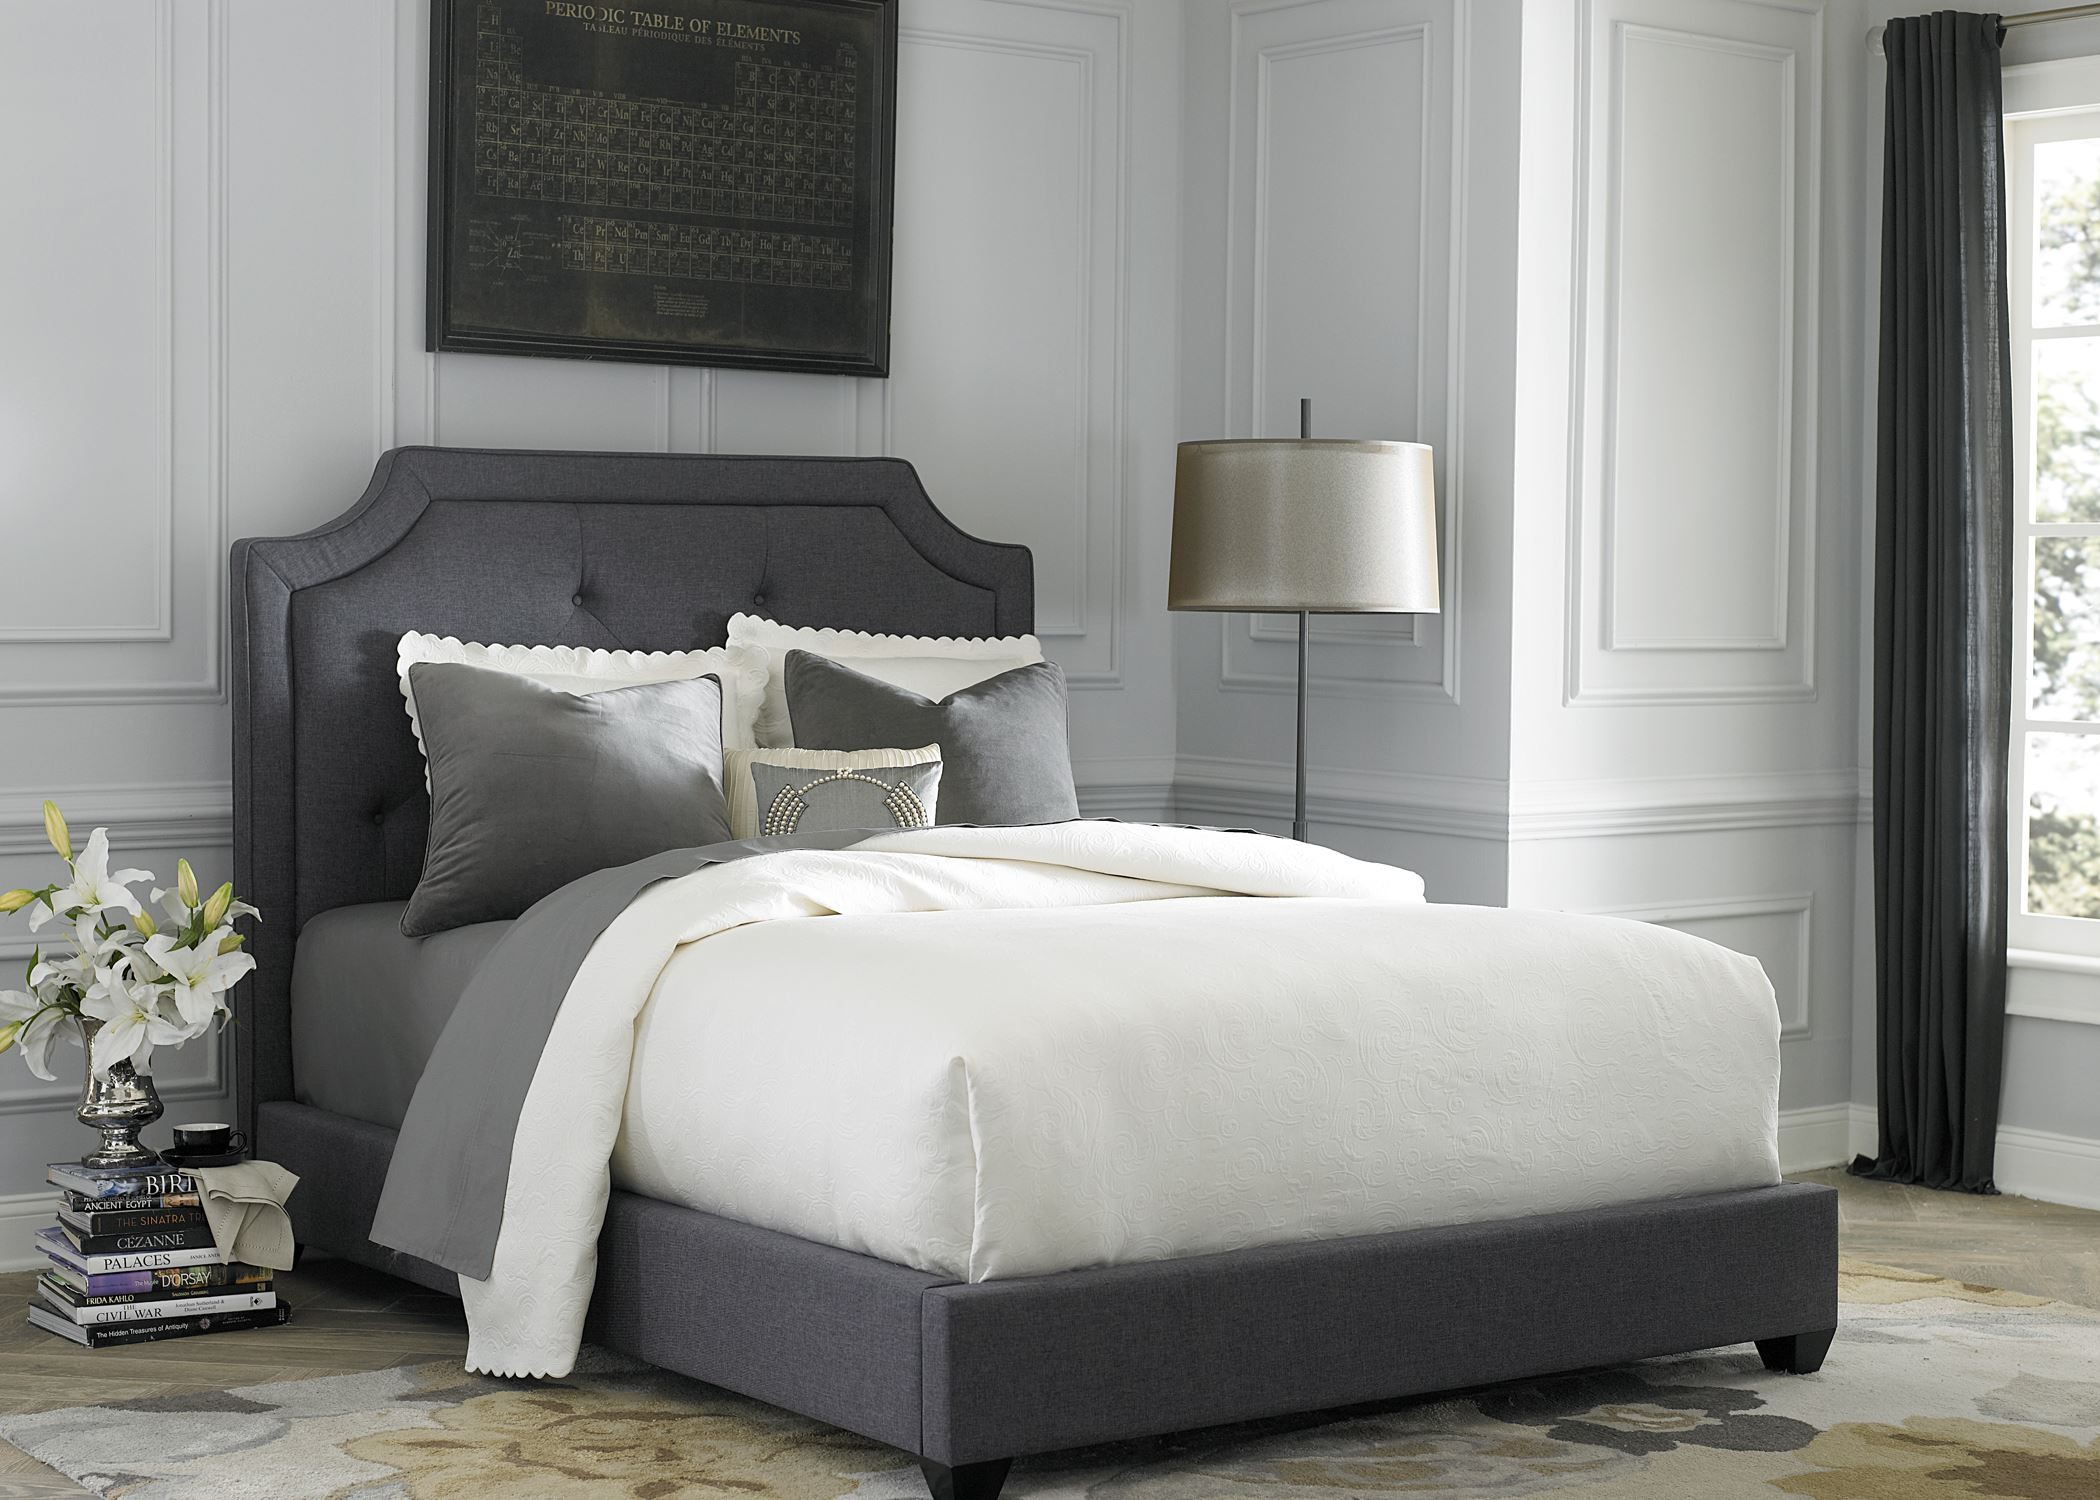 Dark Gray Upholstered Queen Upholstered Bed From Liberty